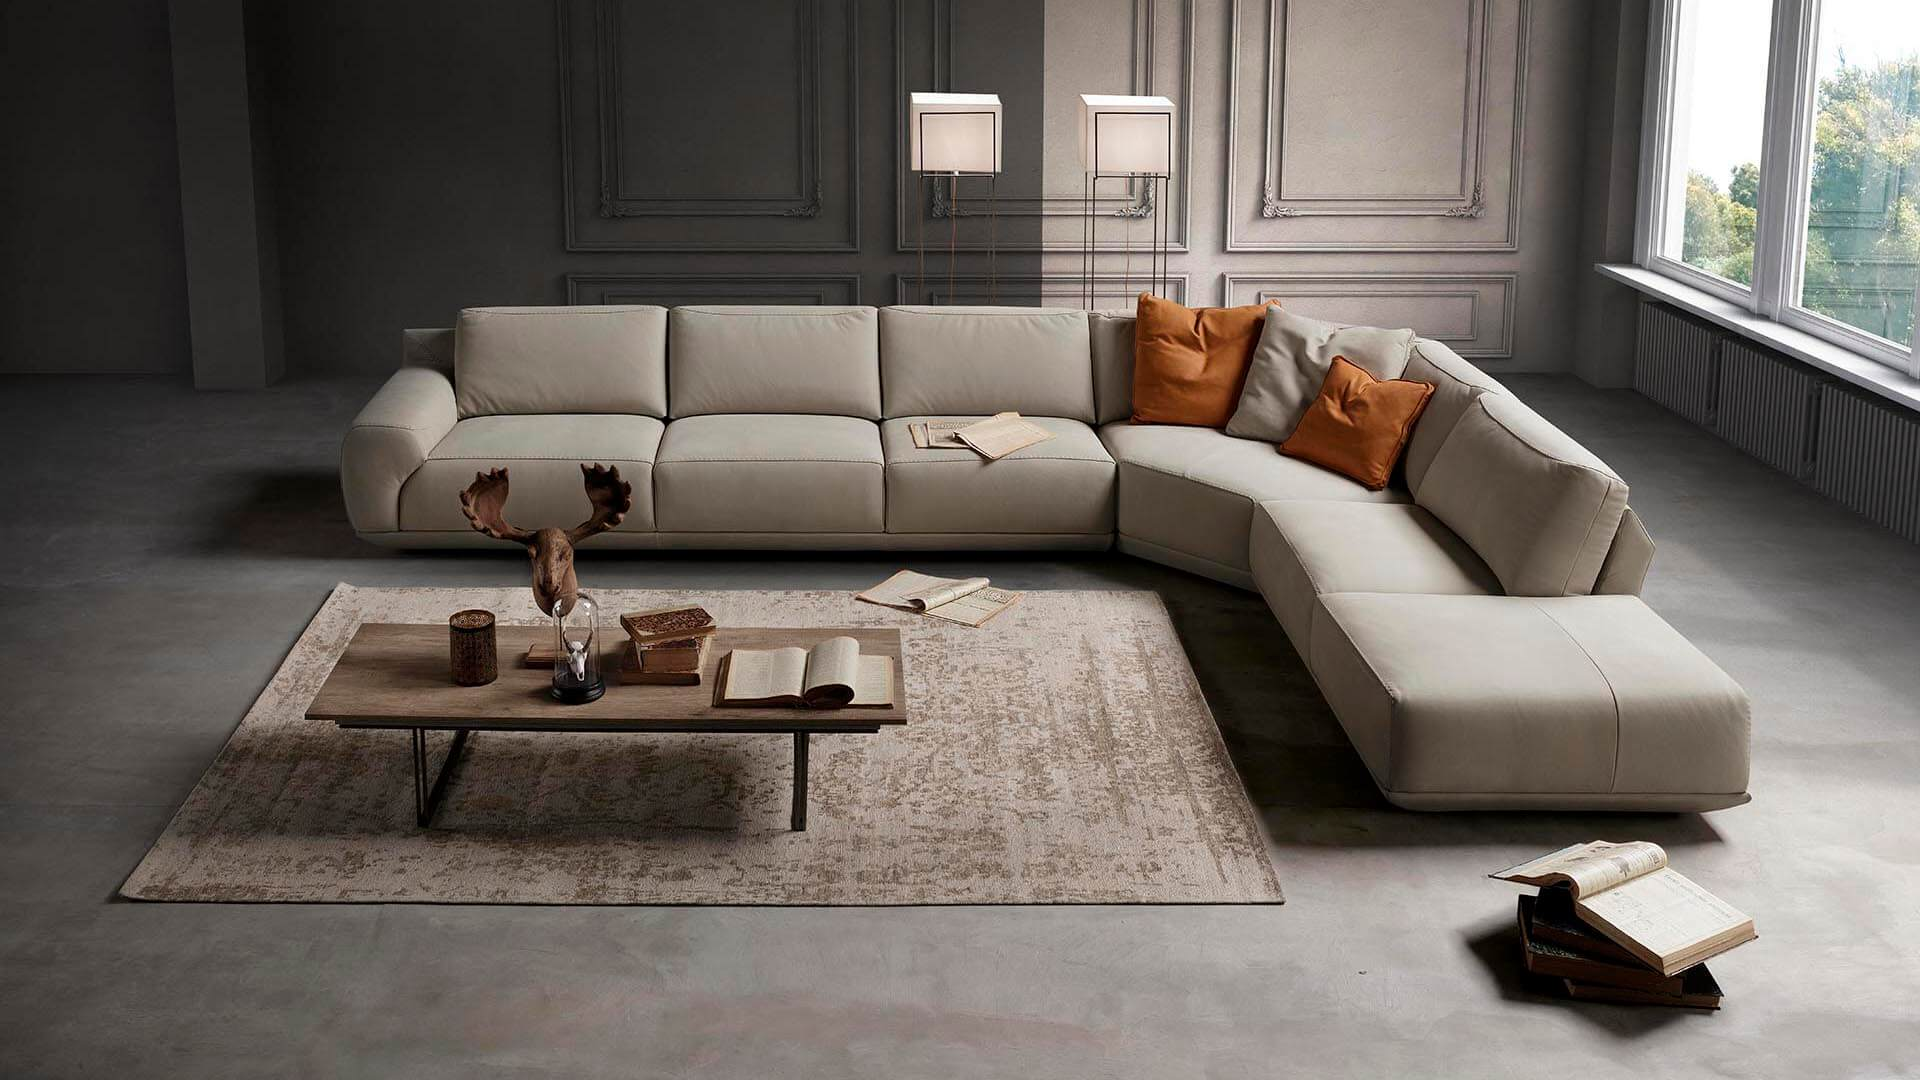 Rossini_sofa_Italy 義大利沙發